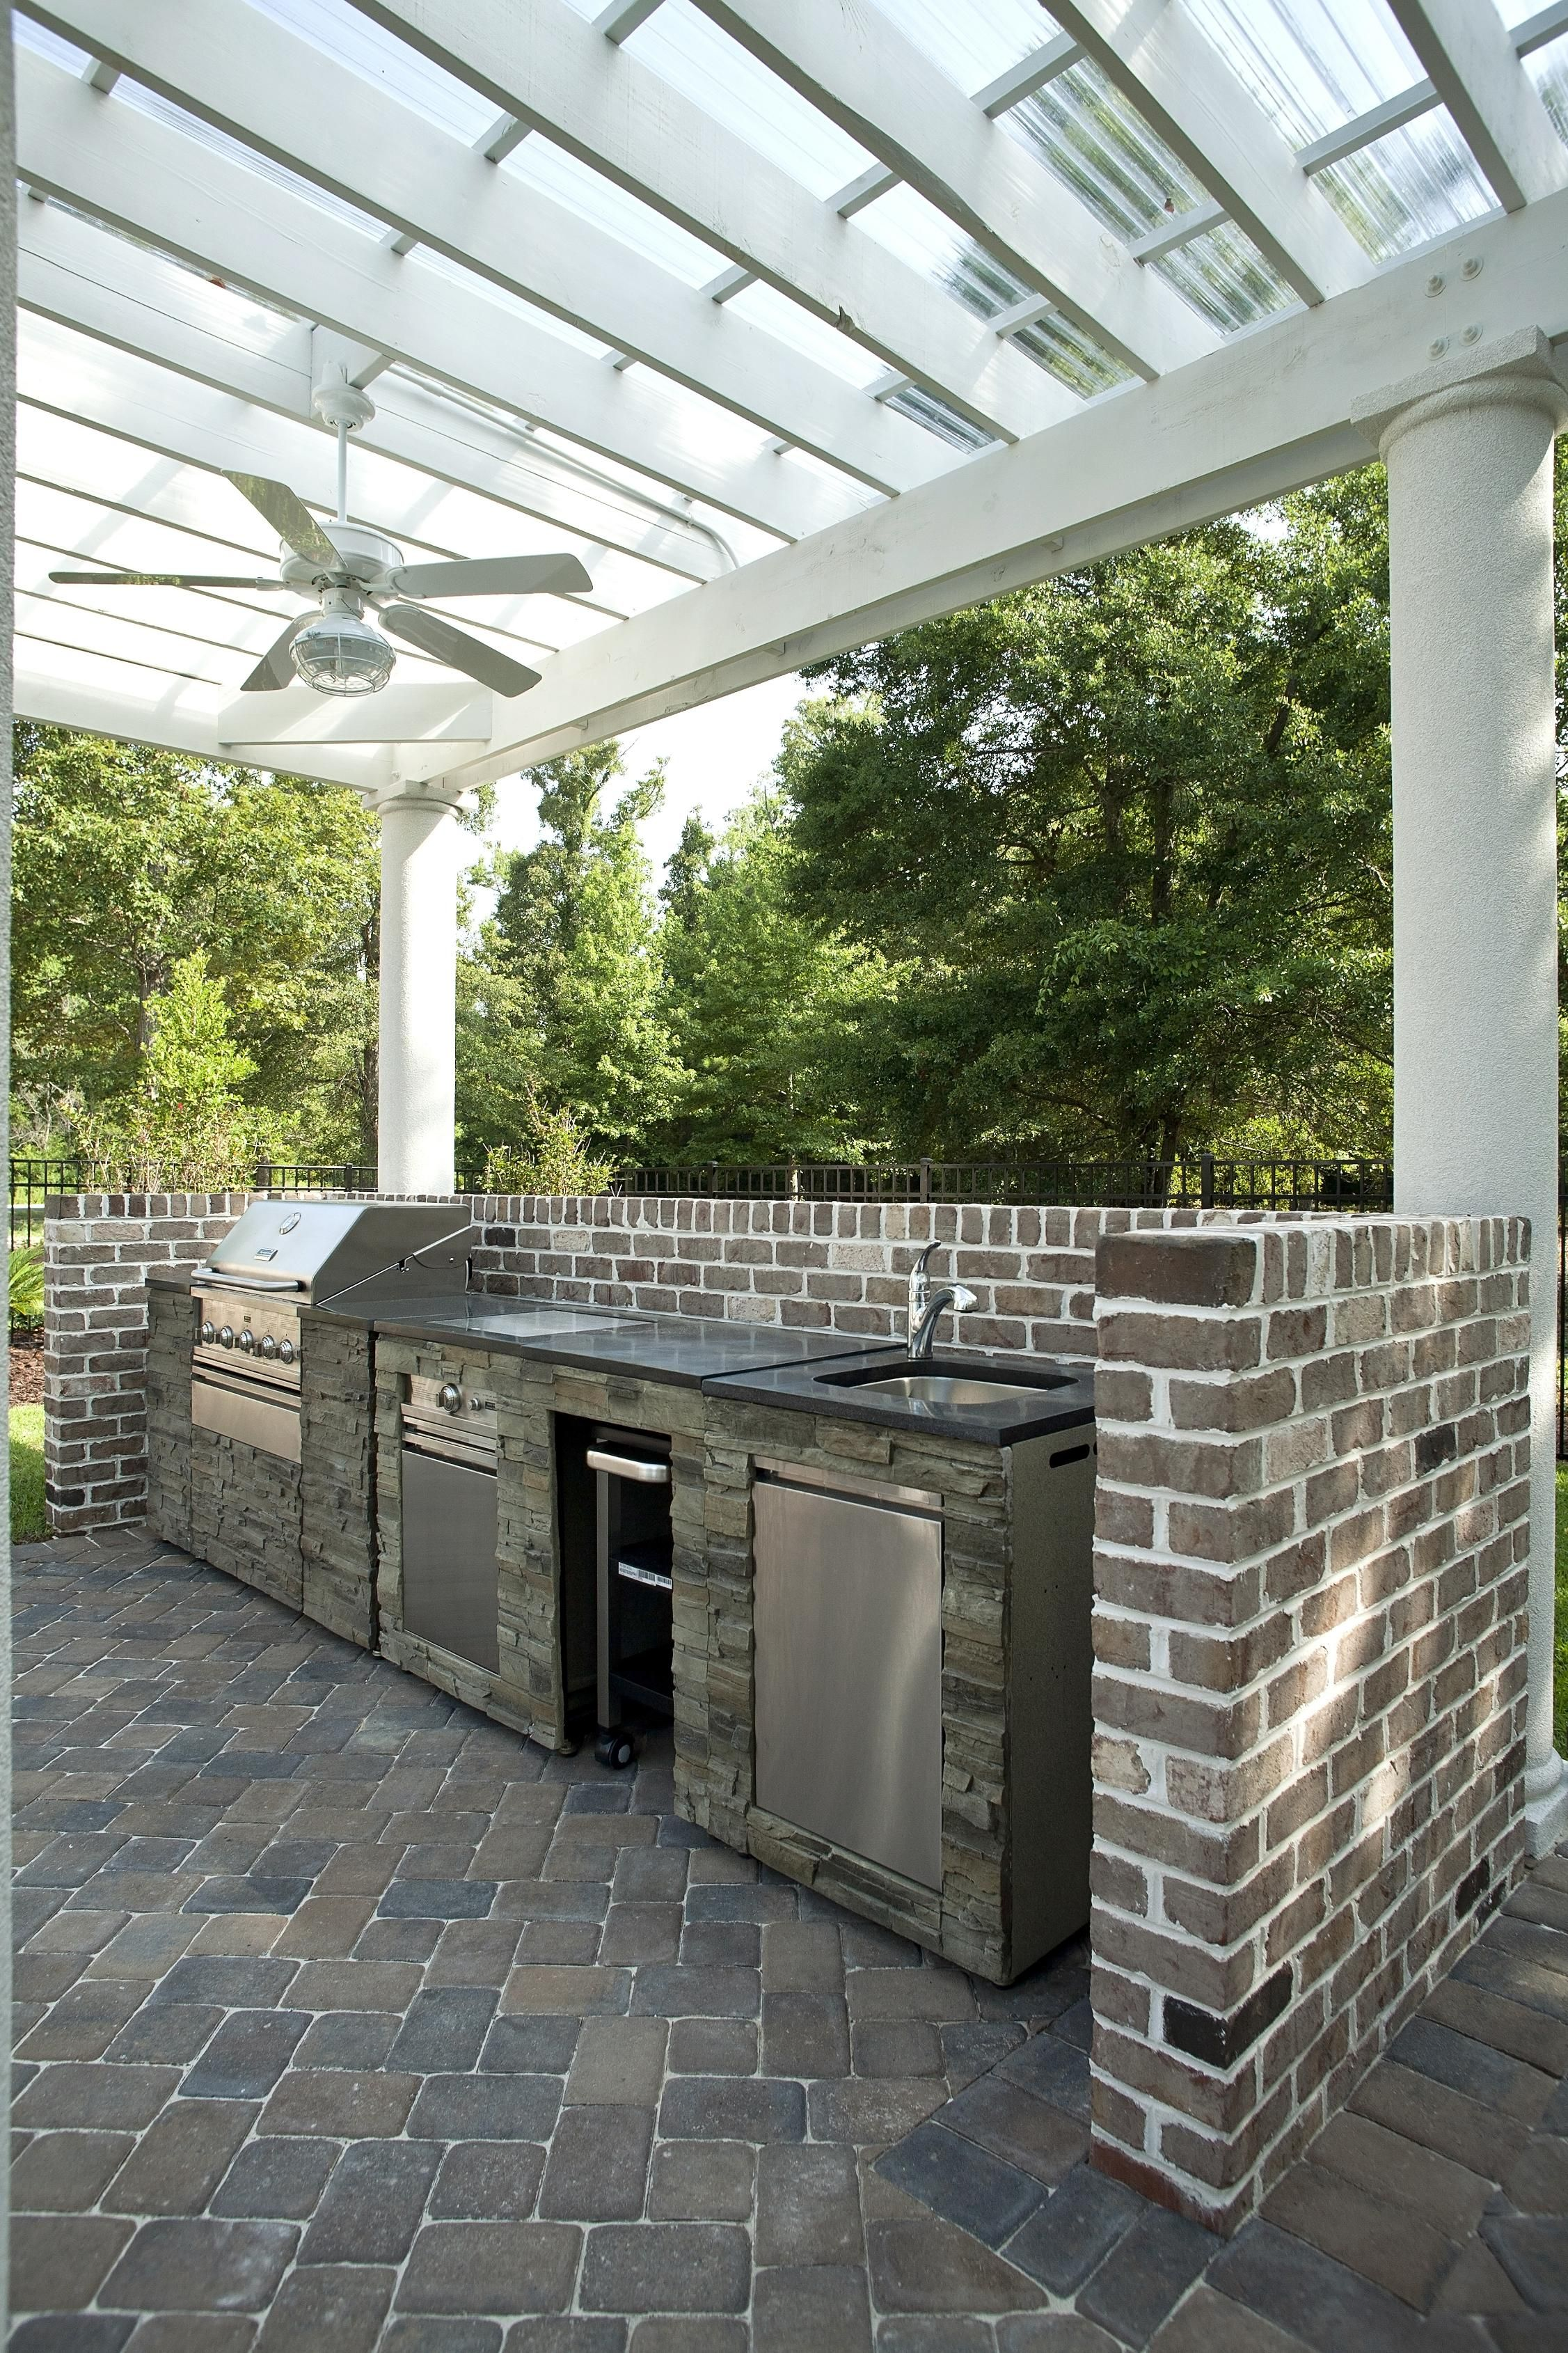 020da6090634e309708f199c0f59ab5c Top Result 50 Awesome Outdoor Fireplace Cover